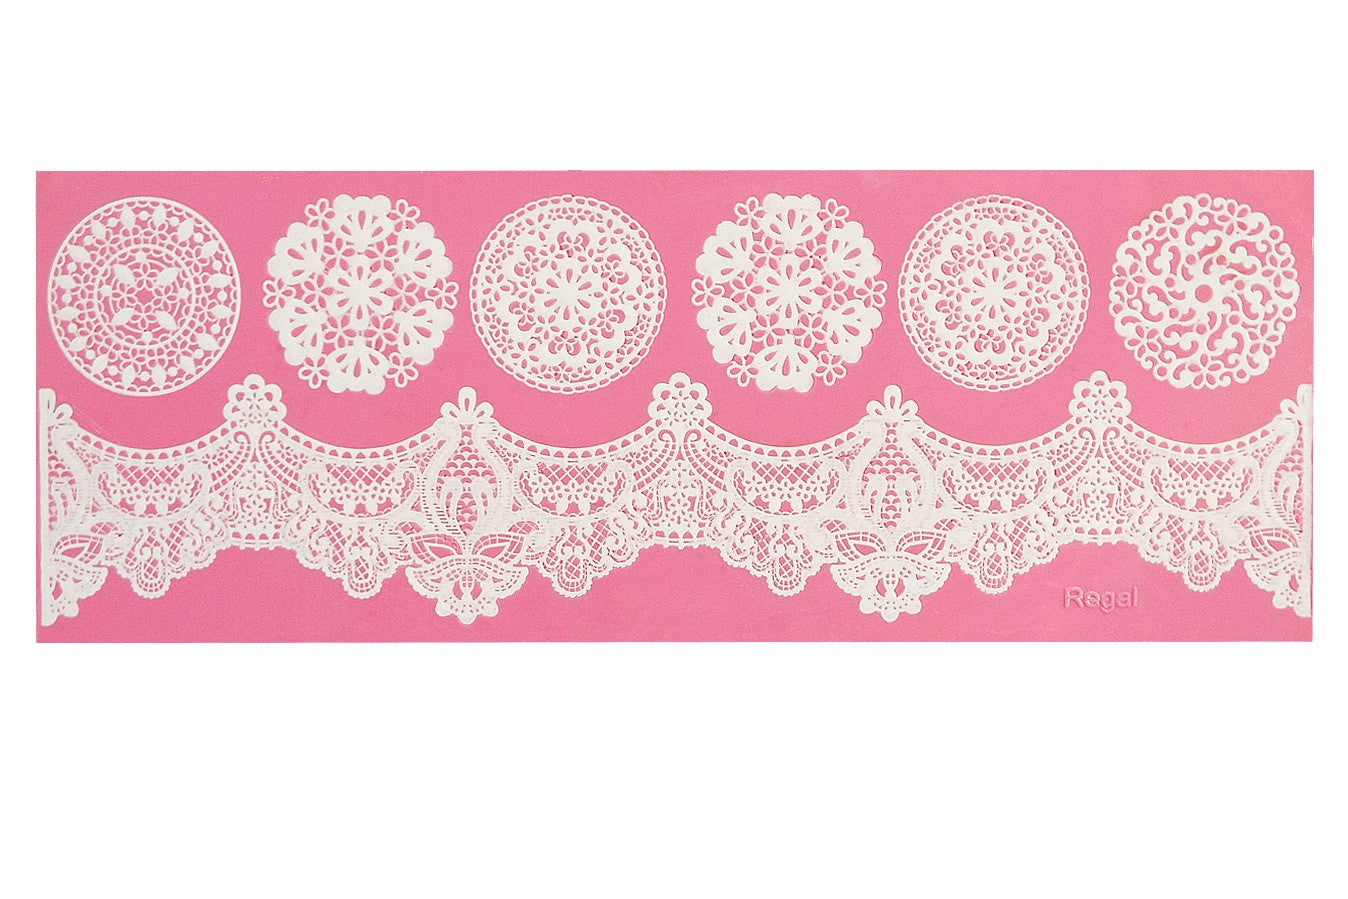 Claire Bowman Regal Cake Lace Mat - Bakeworld.ie